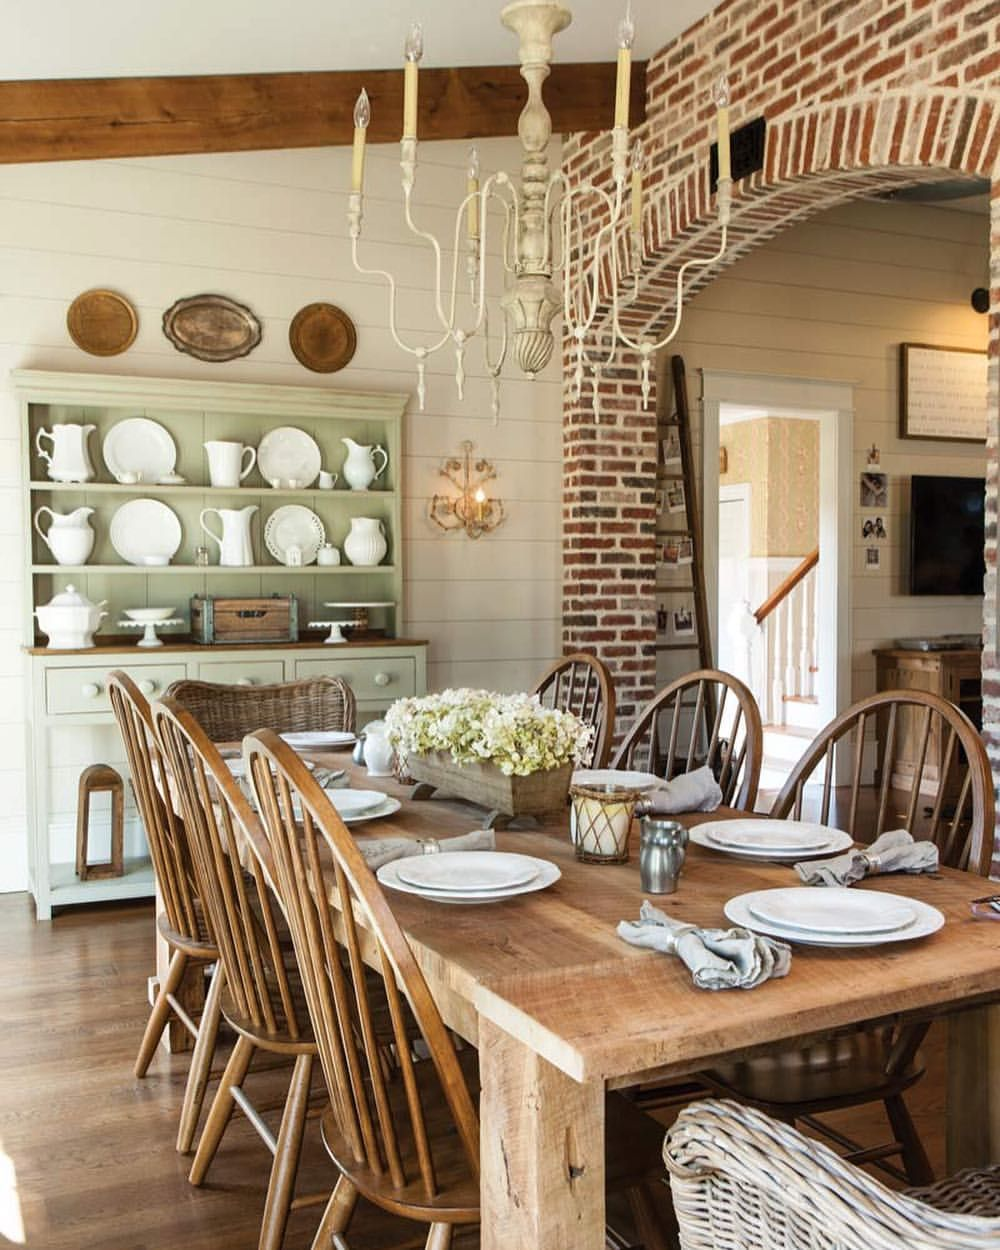 kitchendiningideas dining chairs rustic country spaces in 2019 rh pinterest com